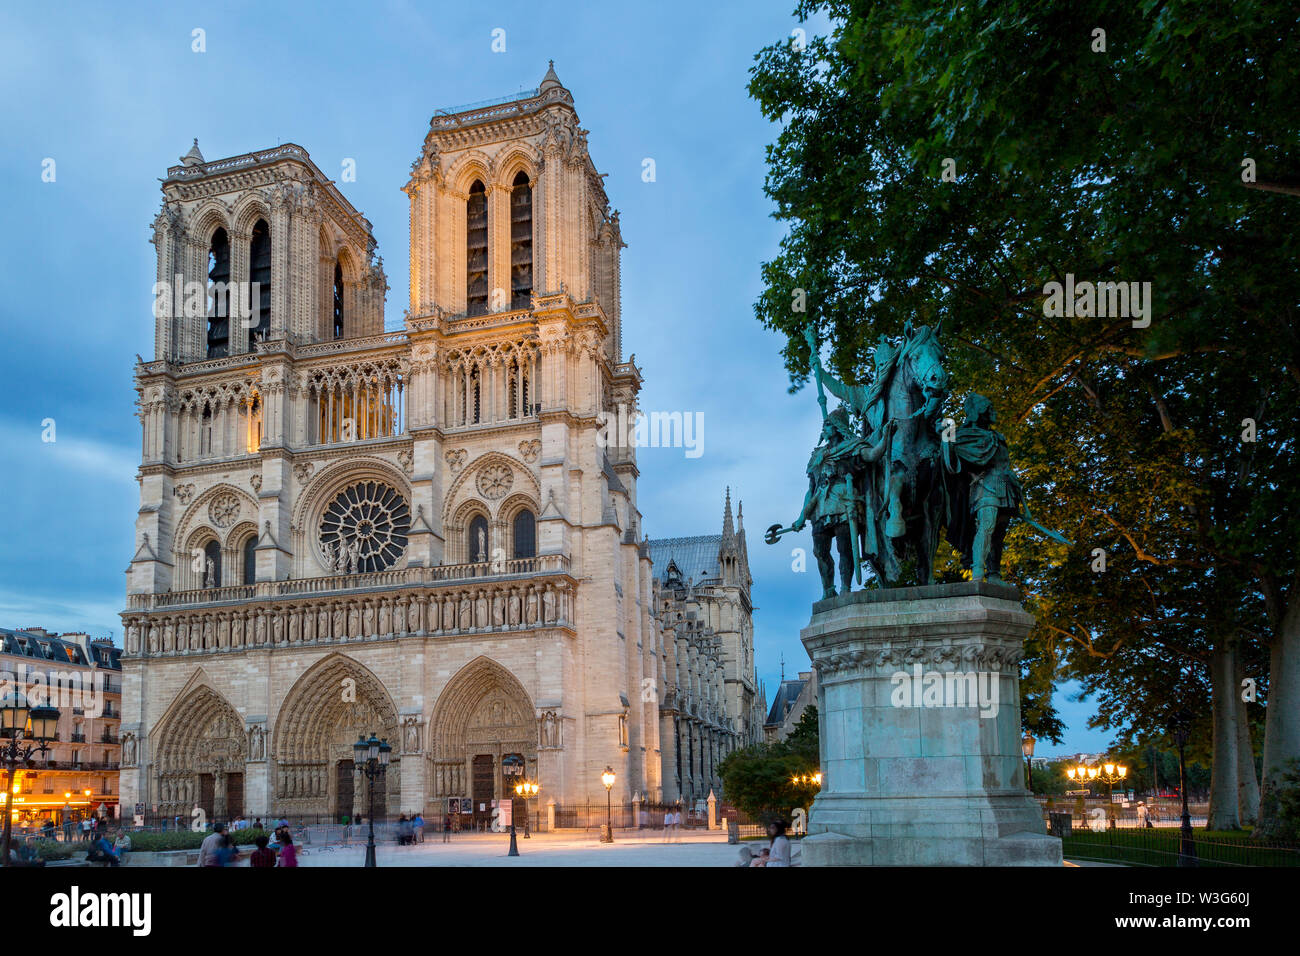 Charlemagne statue below the front facade of Cathedral Notre Dame, Paris France - Stock Image